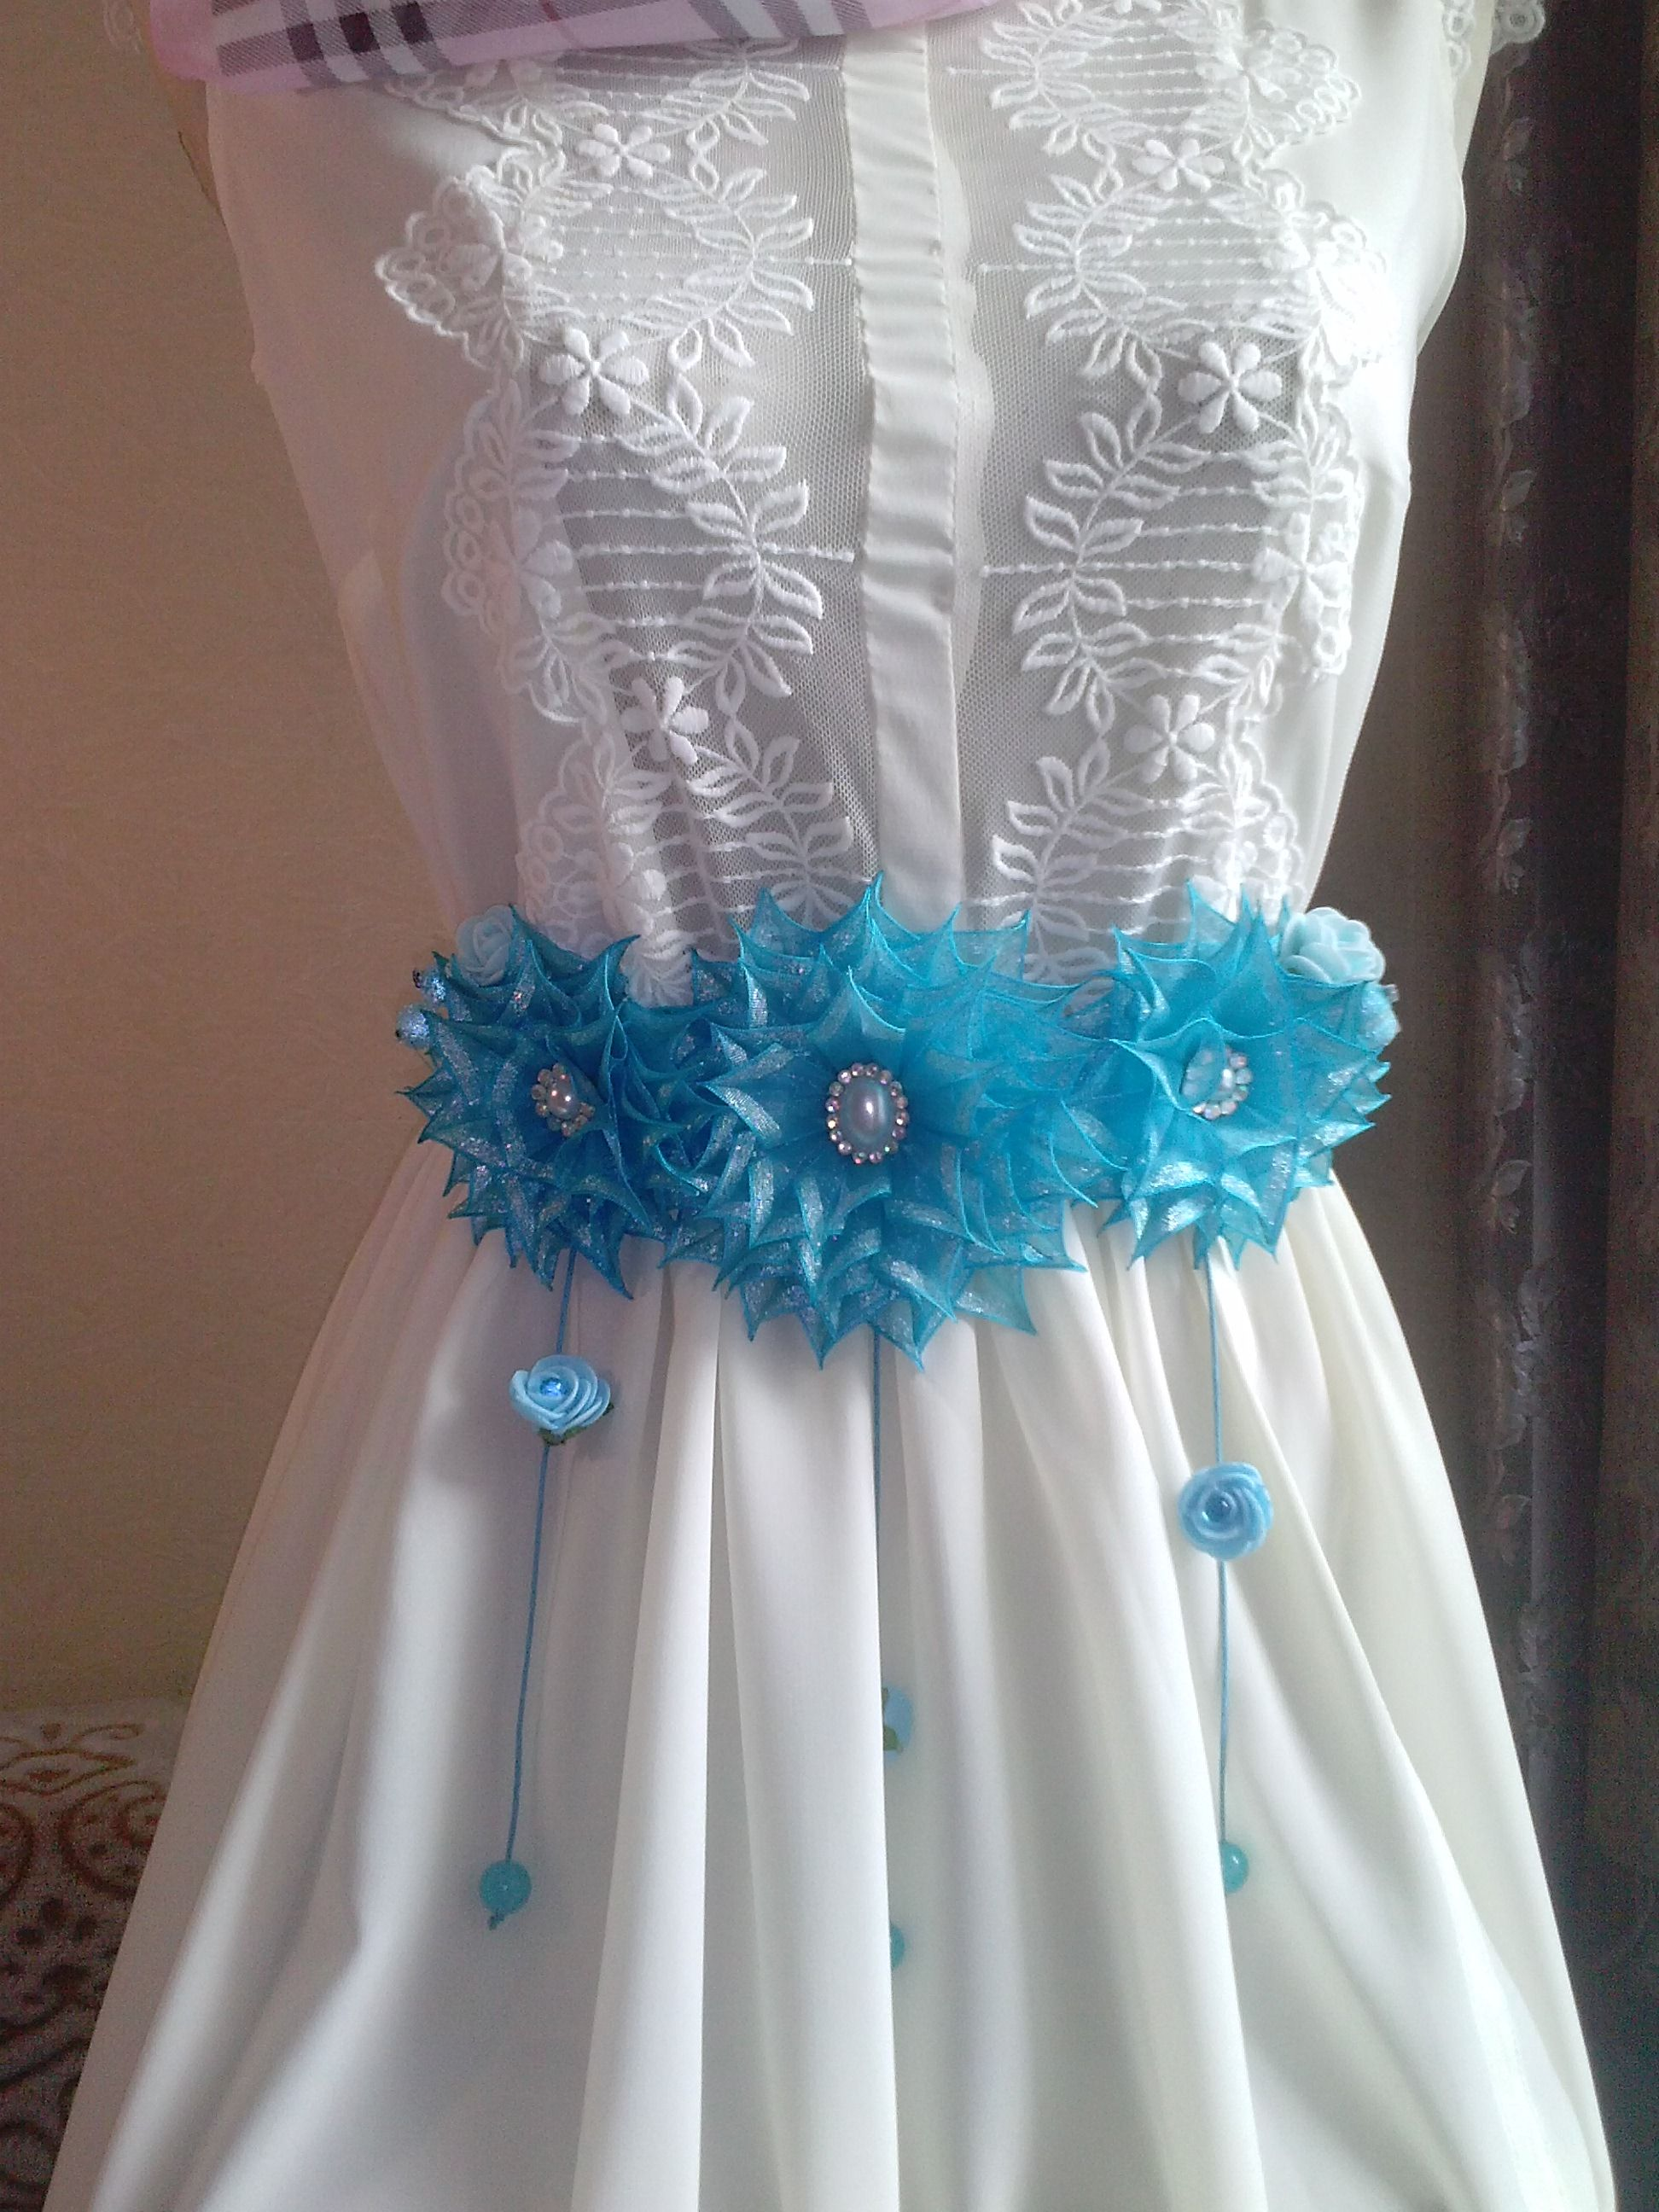 This gorgeous flower girl or bridesmaid sash is made with beautiful